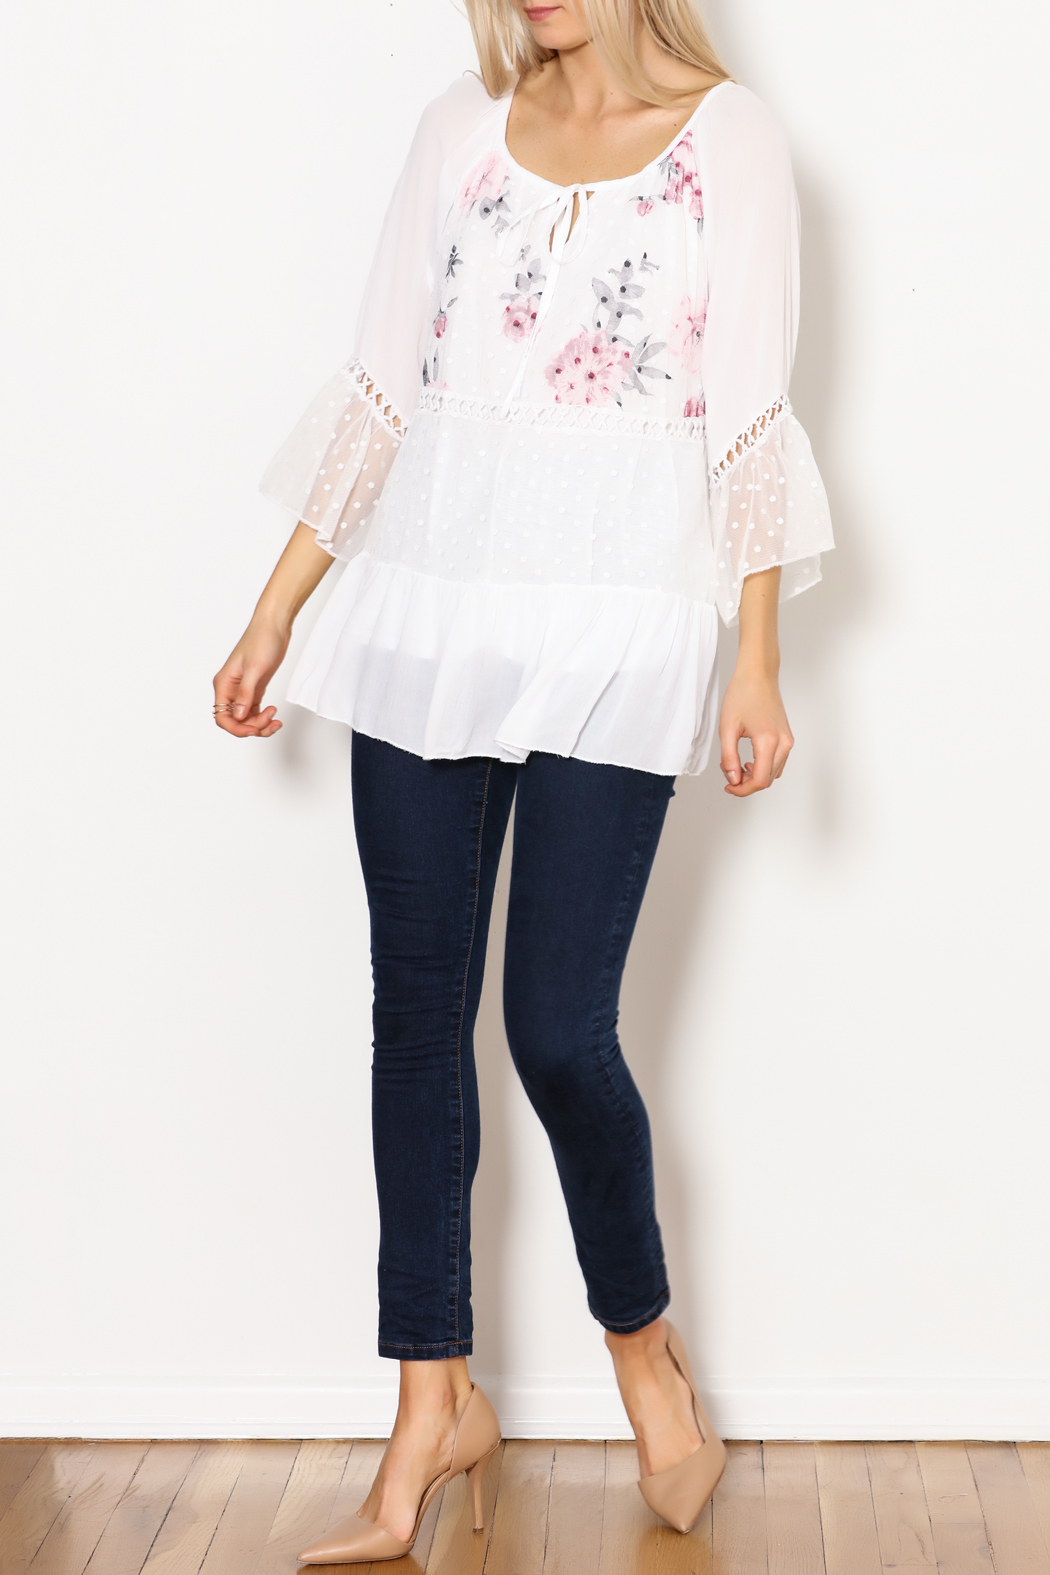 Bella Amore White Dot With Floral Italian Top - Side Cropped Image